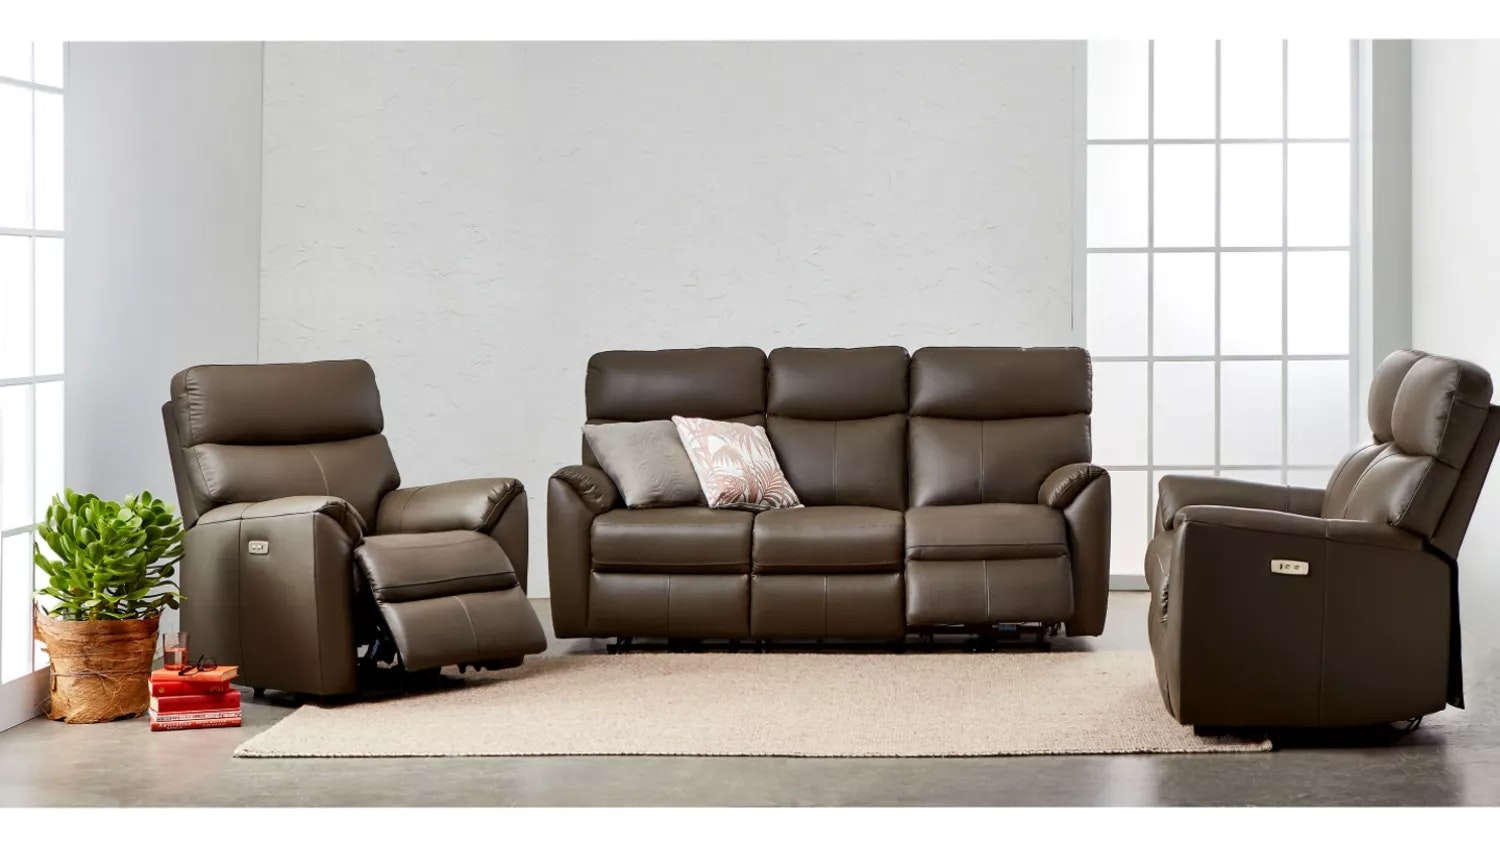 Montague Leather Recliner with Electronic Reclining Action - Graphite